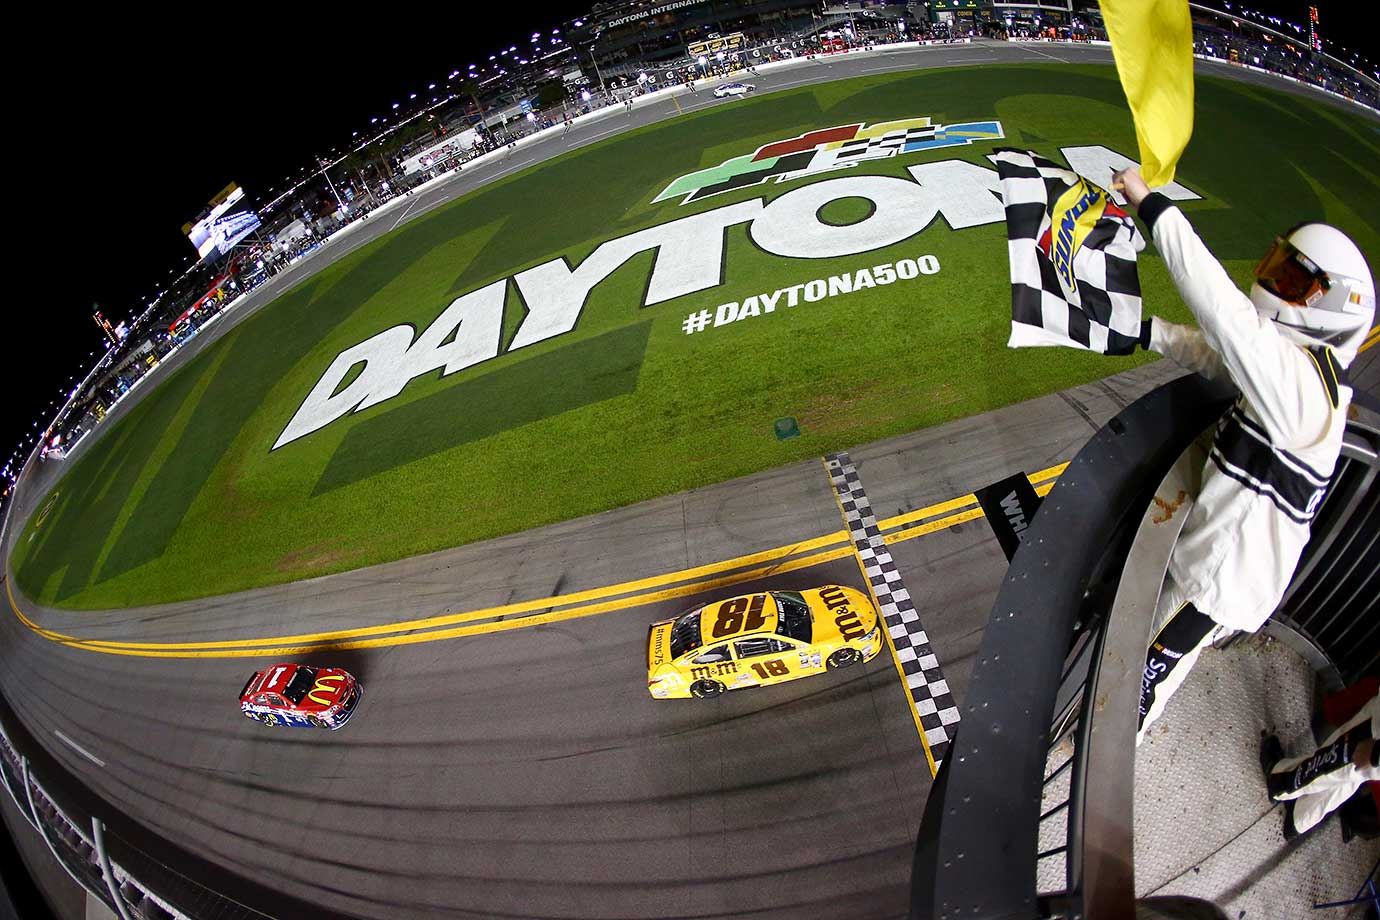 Kyle Busch takes the checkered flag to win a qualifying race that also set the starting grid for Sunday's Daytona 500.